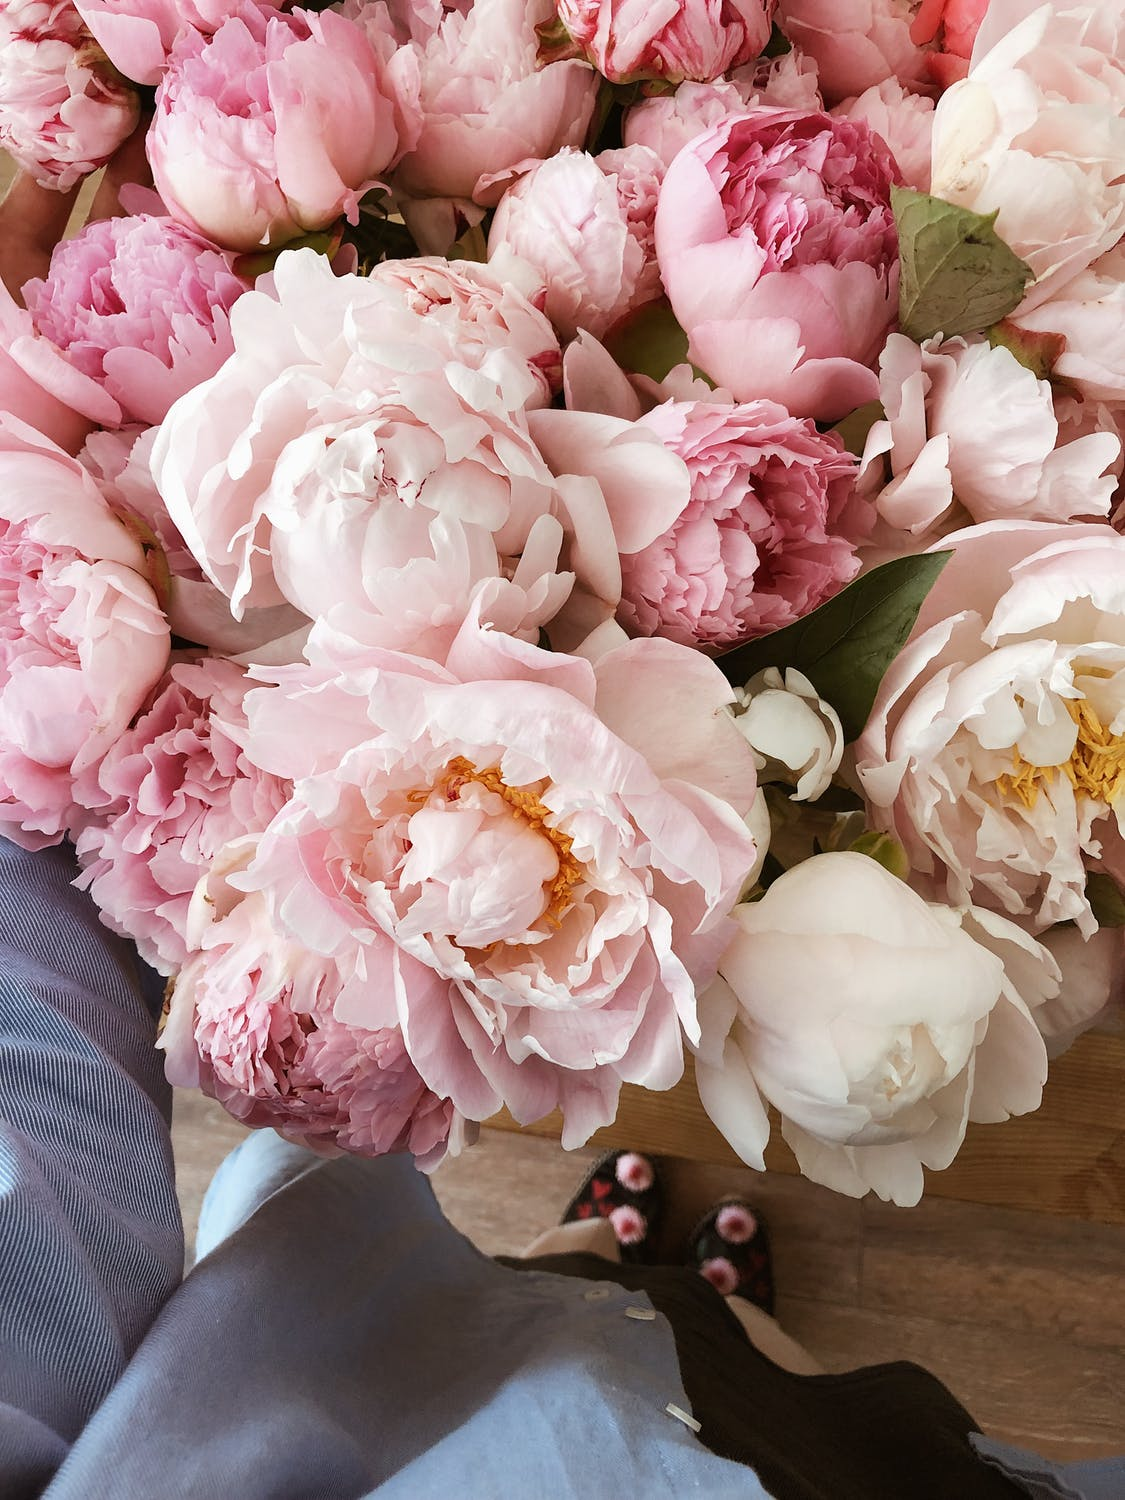 Flower iphone wallpapers, peony wallpapers